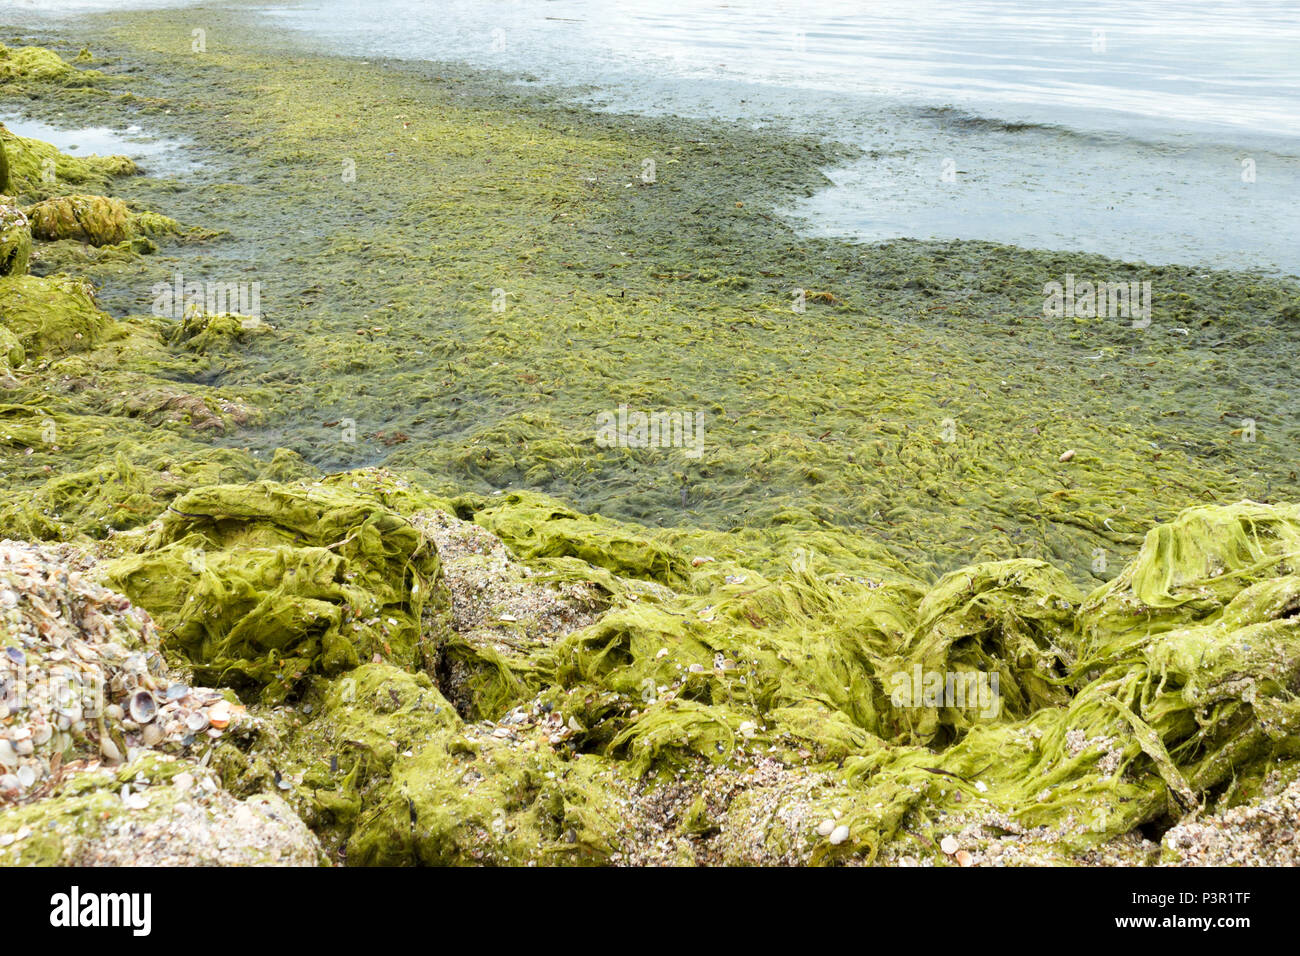 Green rocks. Beach with green seaweeds rocks by the beach. ecology and natural disasters concept. - Stock Image